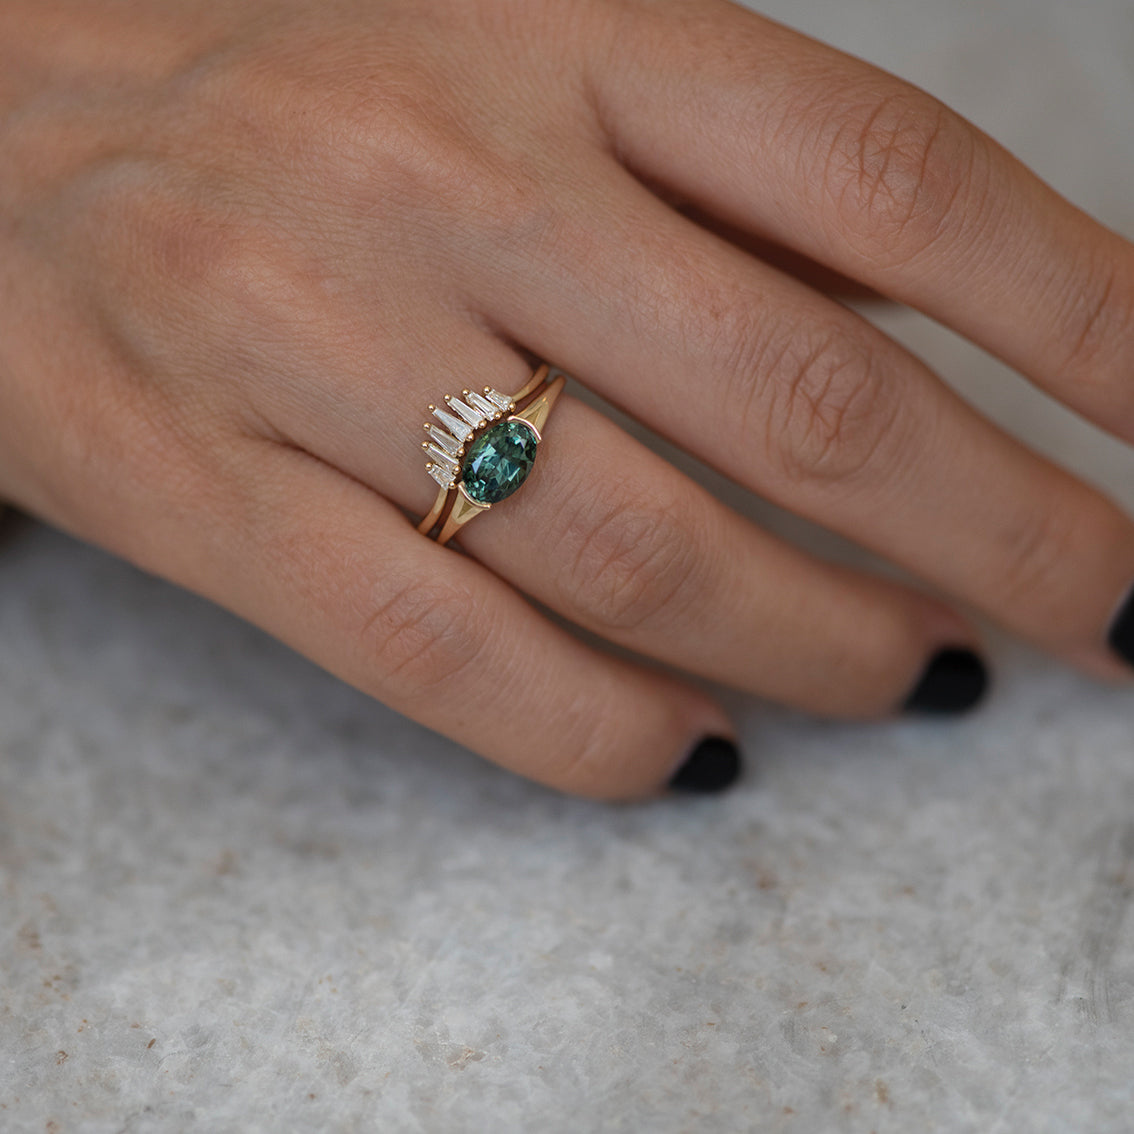 OOAK Solitaire Teal Sapphire Ring - 1.86 carat